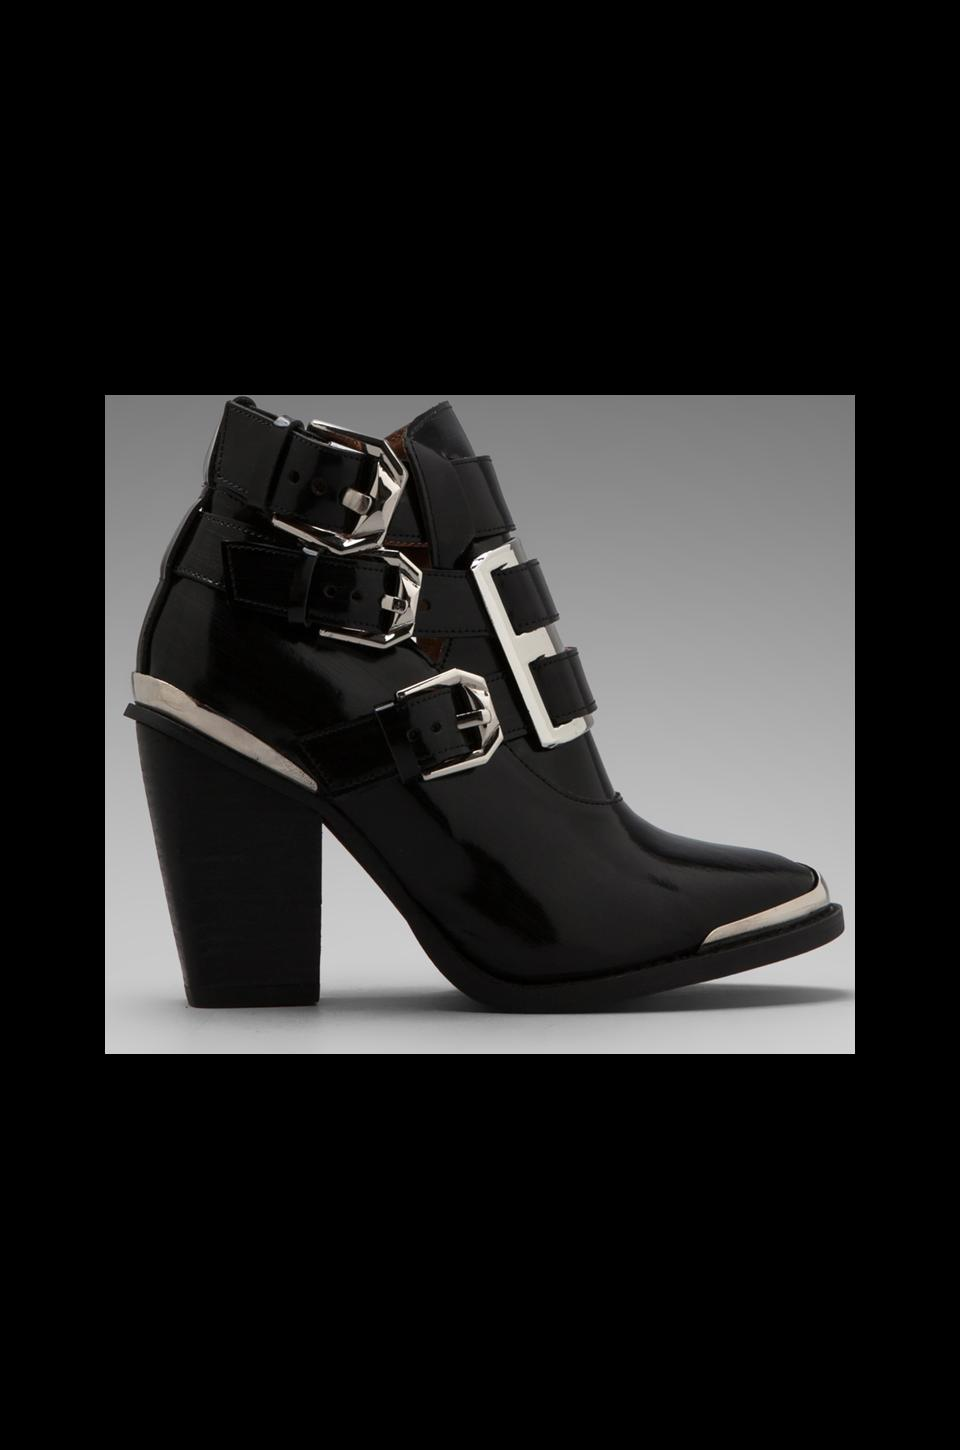 Jeffrey Campbell Hyatt Bootie with Buckles in Black/Silver